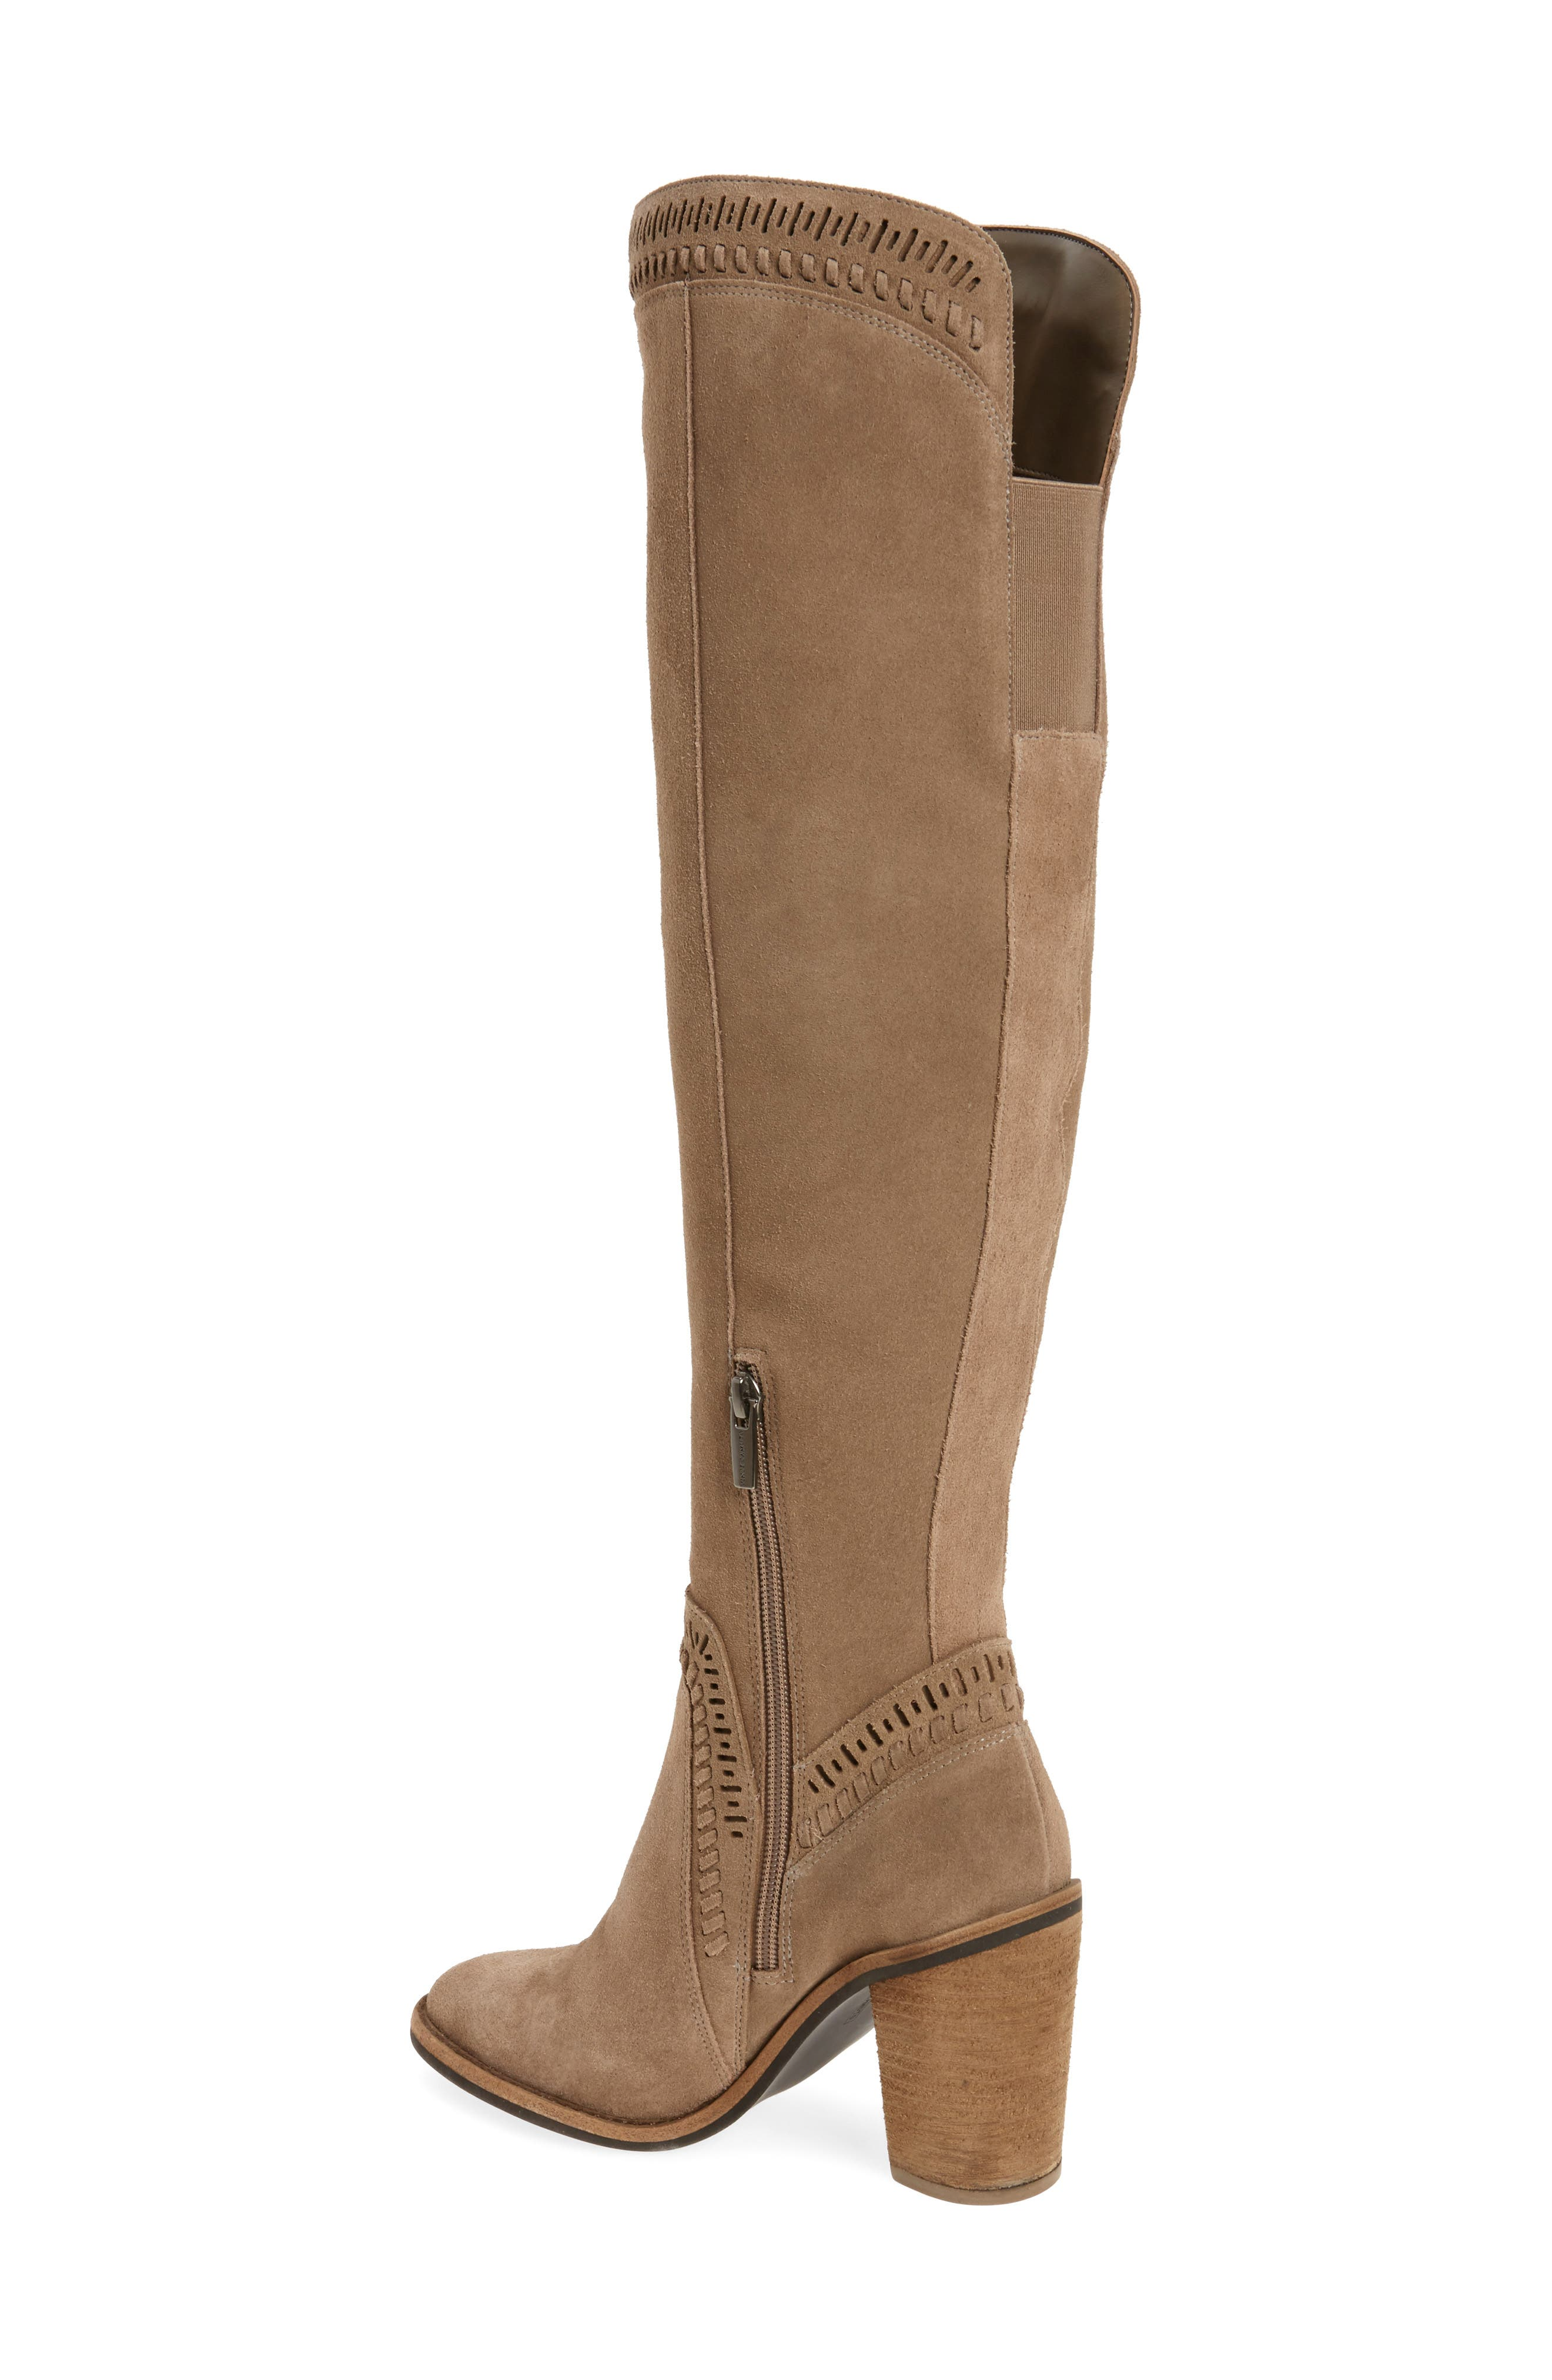 Madolee Over the Knee Boot,                             Alternate thumbnail 2, color,                             Foxy